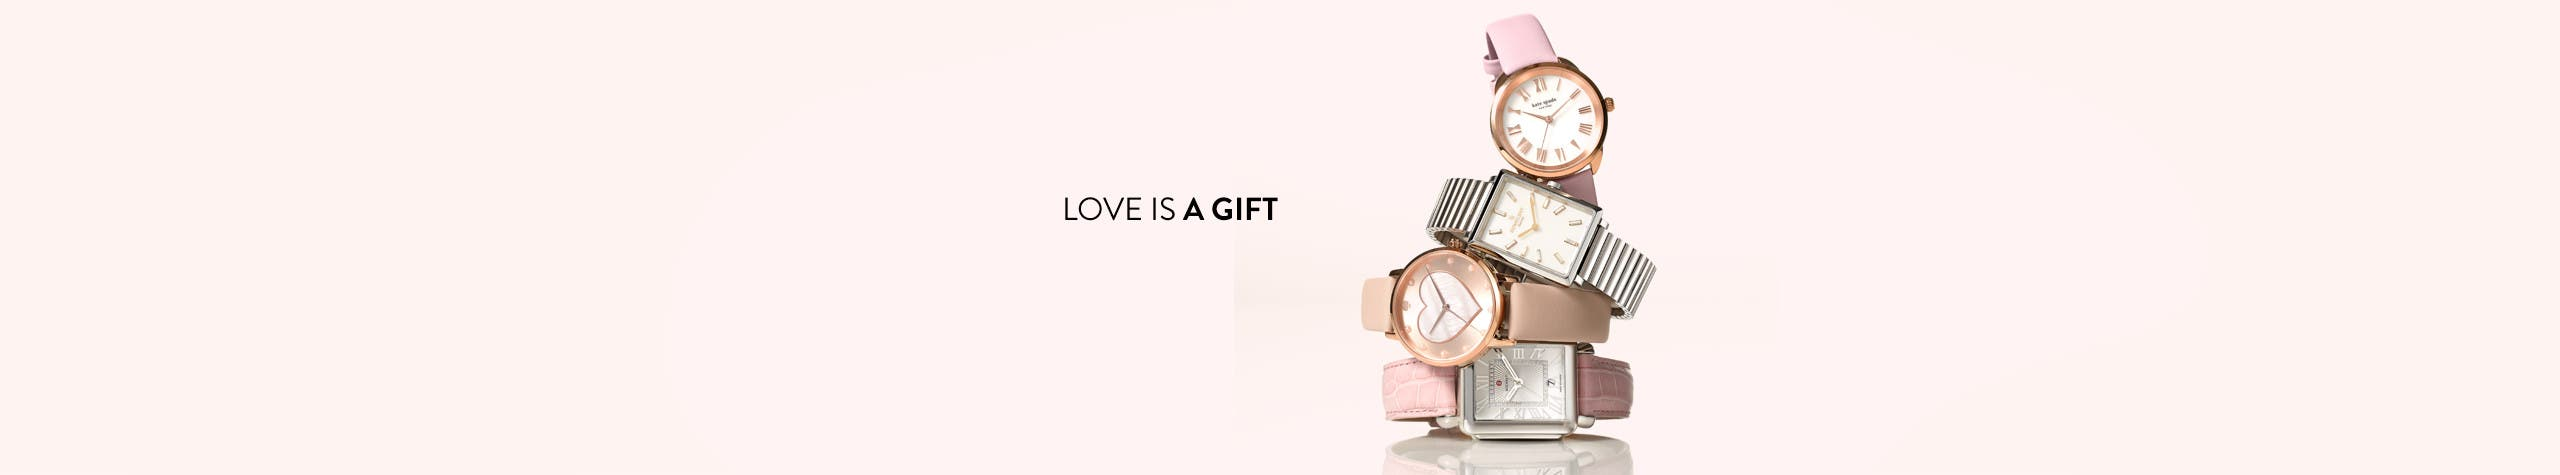 Love is a gift: Valentine's Day watch gifts for women.